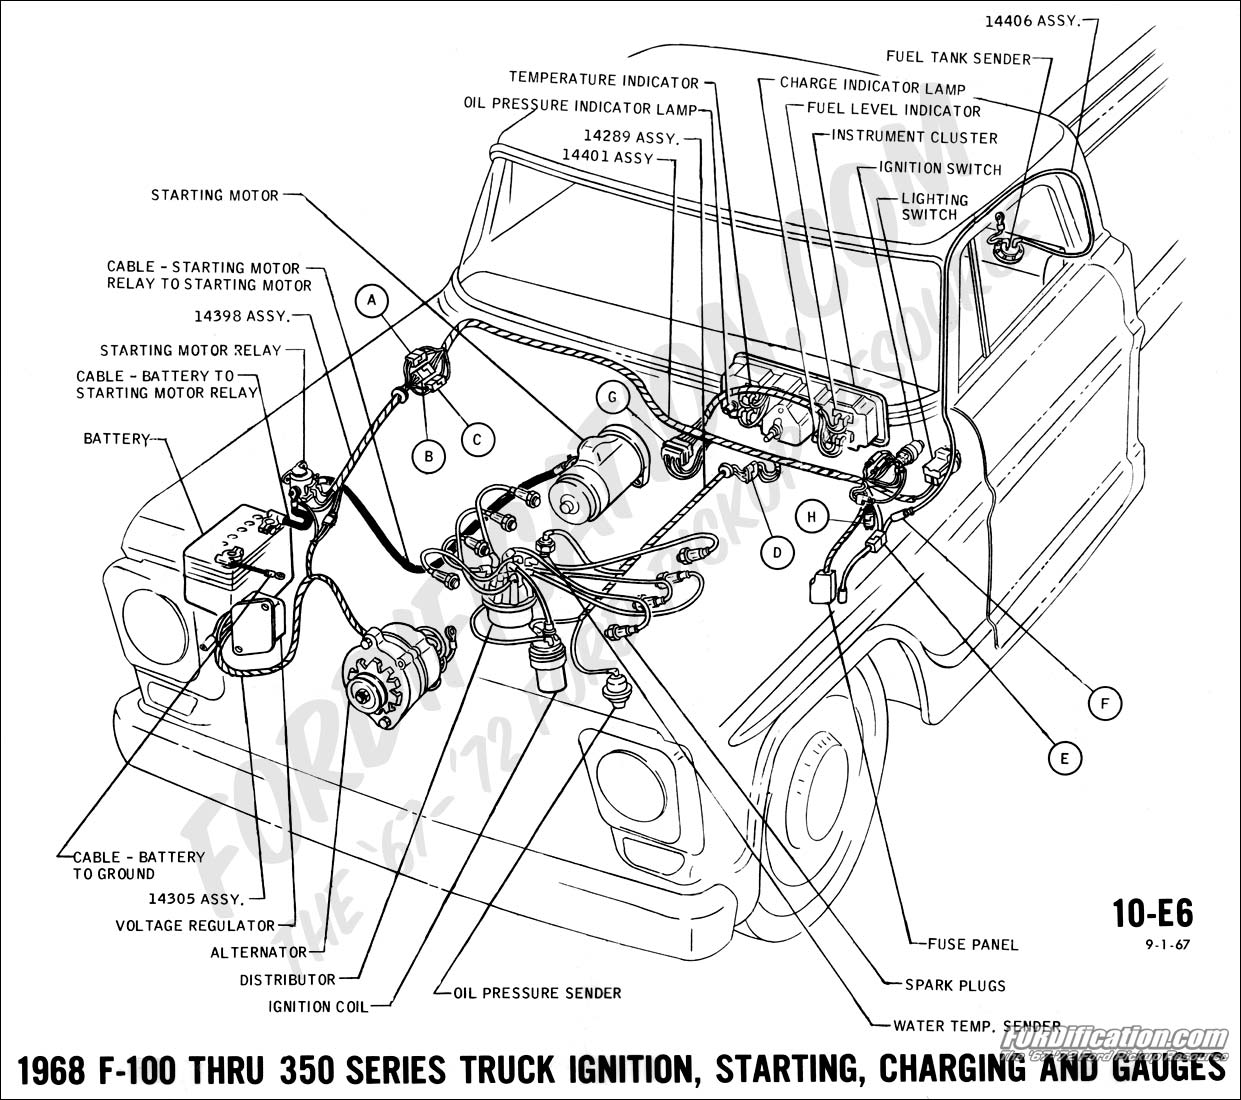 70s camaro headlight wiring diagram